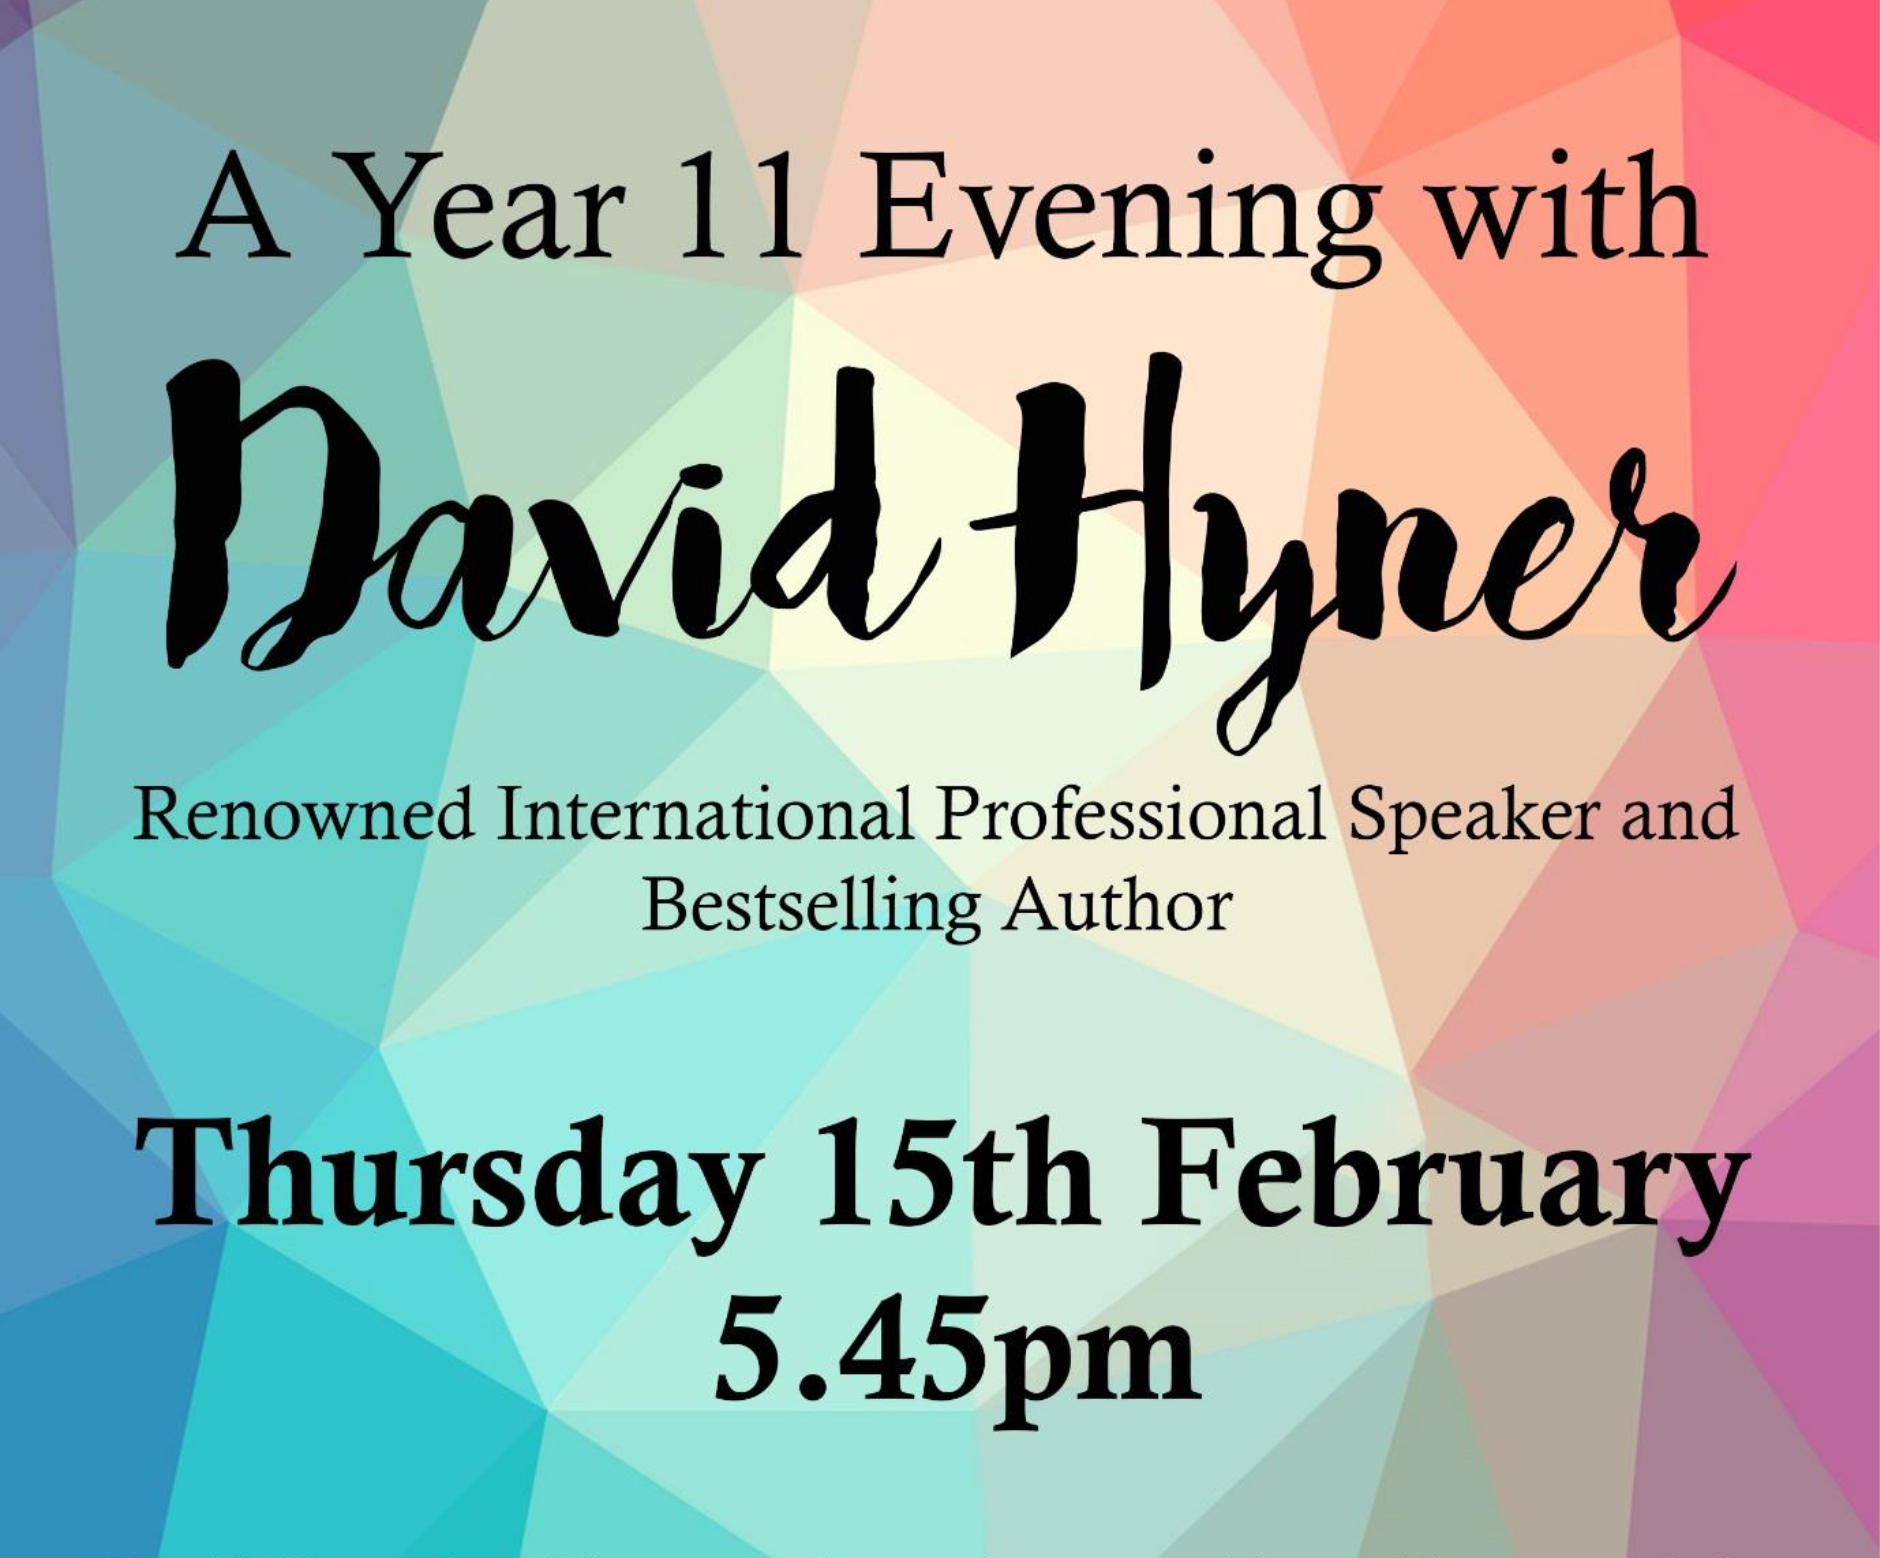 A Year 11 Evening with David Hyner